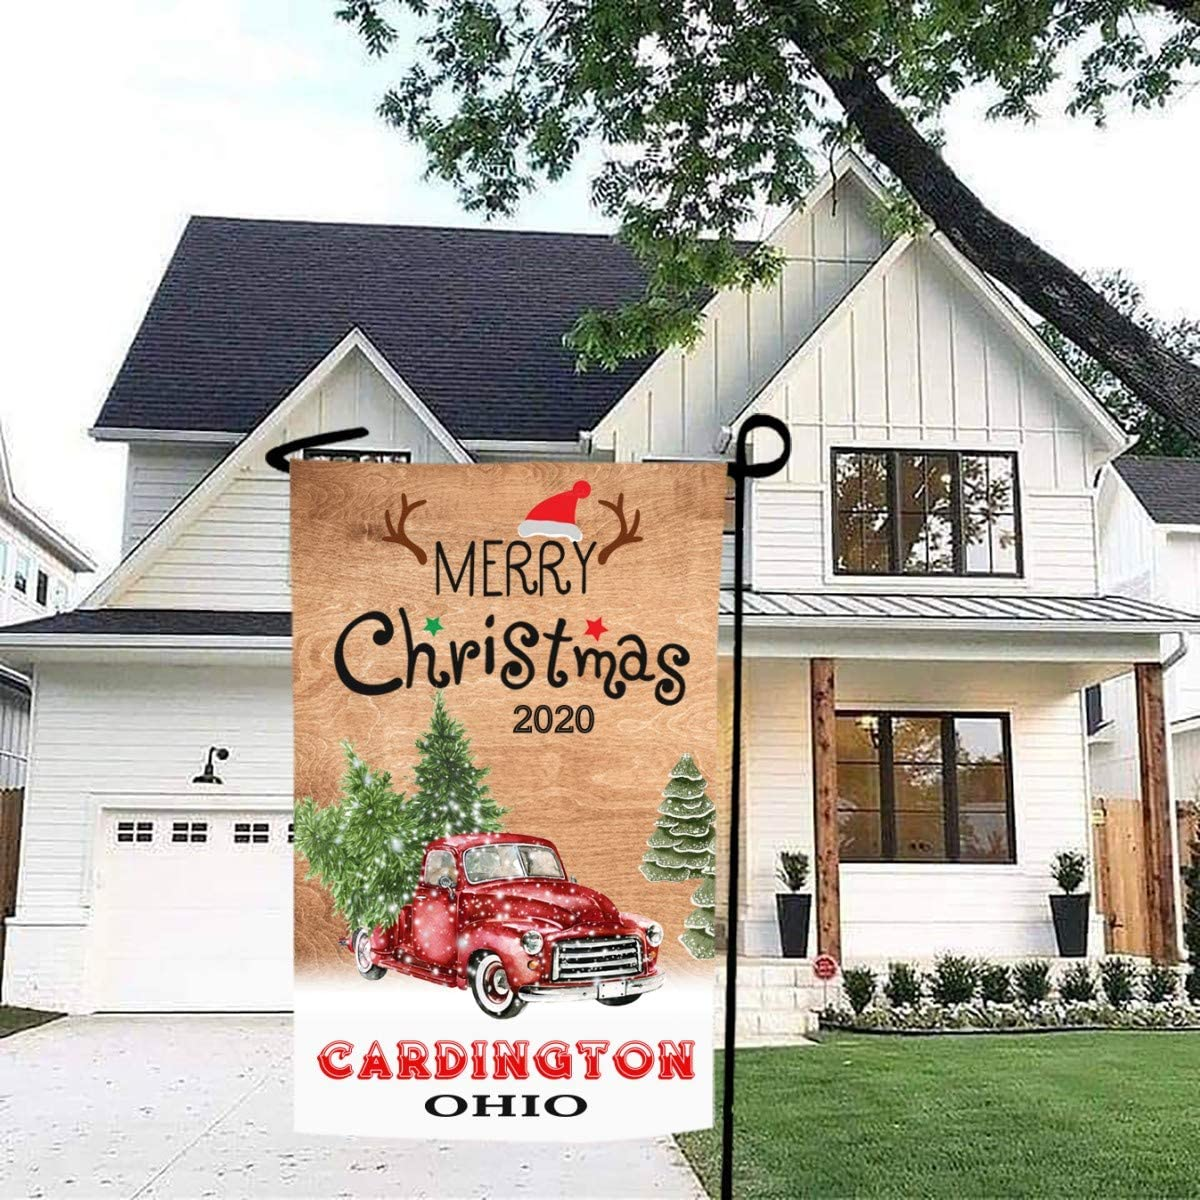 Merry Christmas Garden Flag Red Truck 2020 Cardington Ohio State - Rustic Winter Garden Yard Decorations, Outdoor Flag 12x18 Inch Double-Sided for Home, Garden (Not Included Stand)